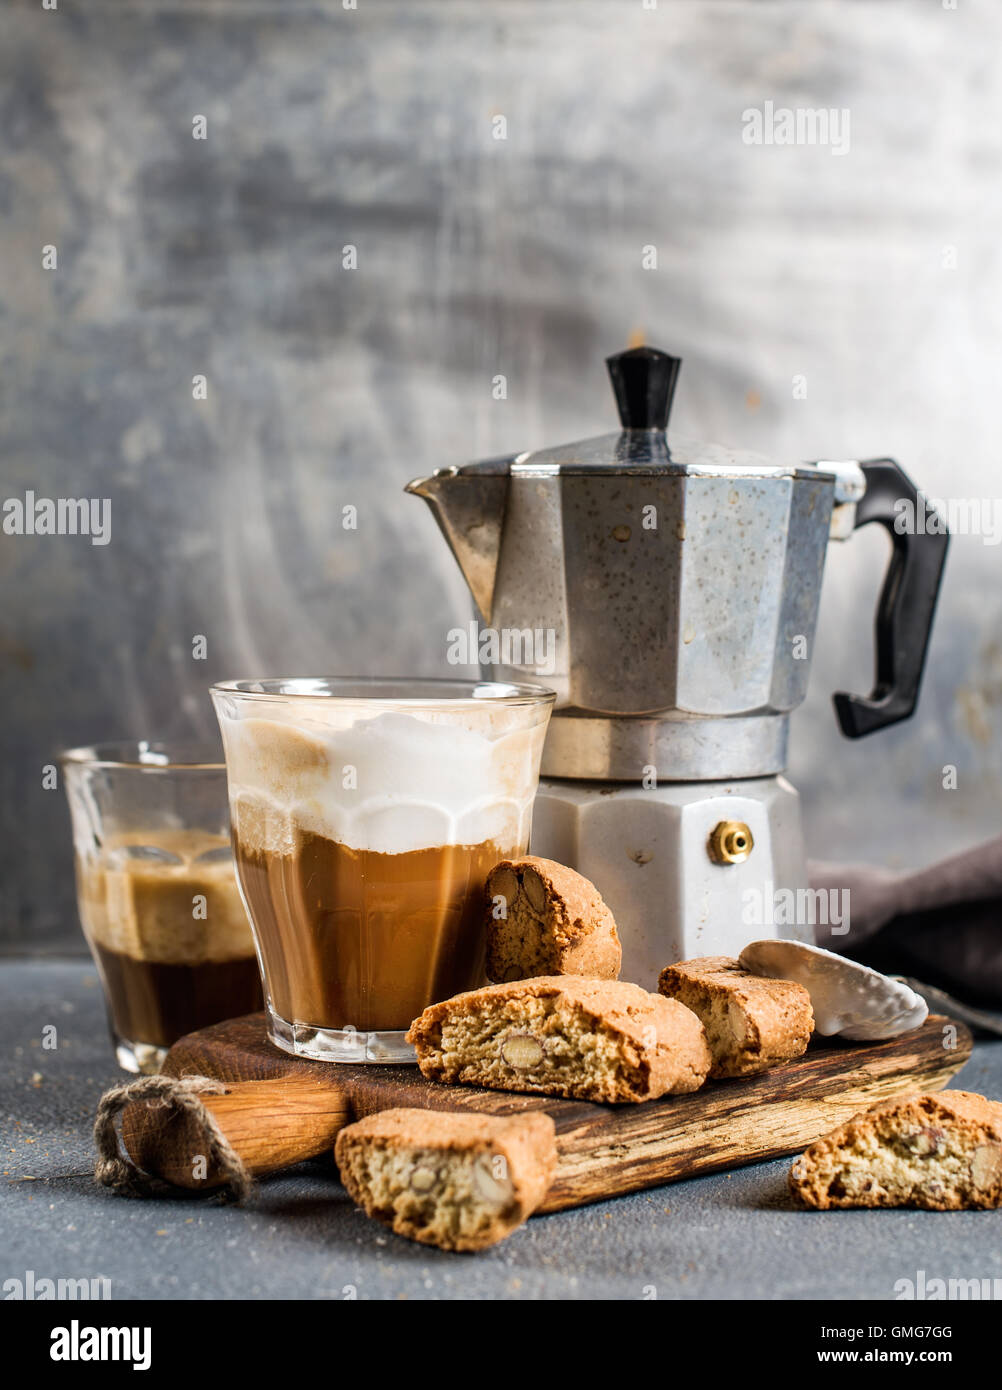 Glass of latte coffee on rustic wooden board, cantucci biscuits and steel Italian Moka pot, grey background - Stock Image